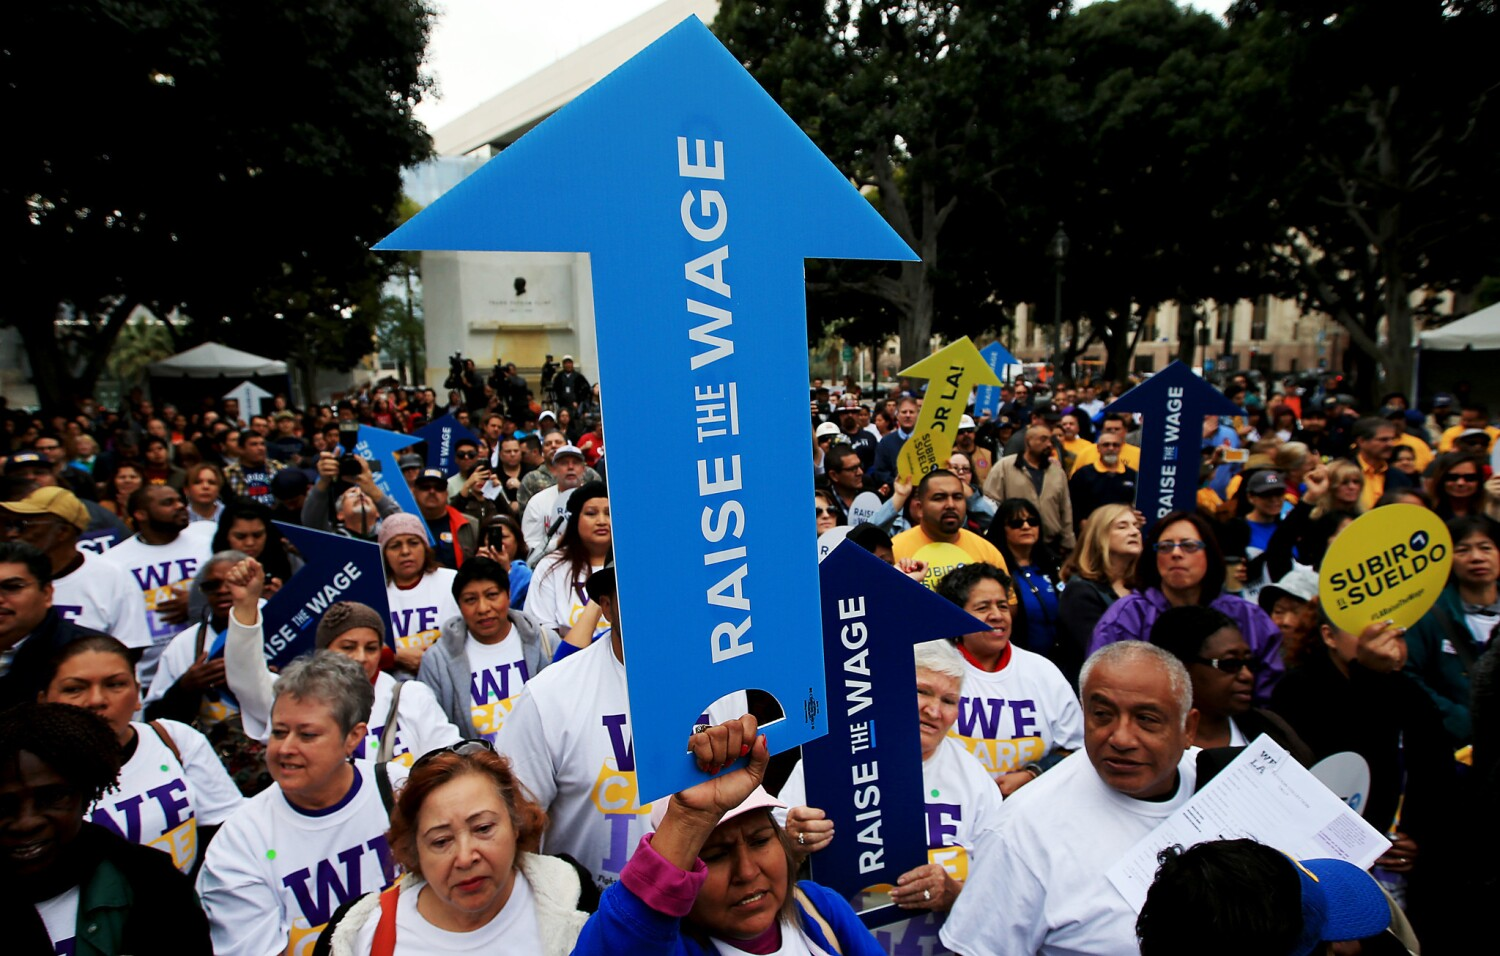 Can a higher minimum wage save lives by reducing suicides?